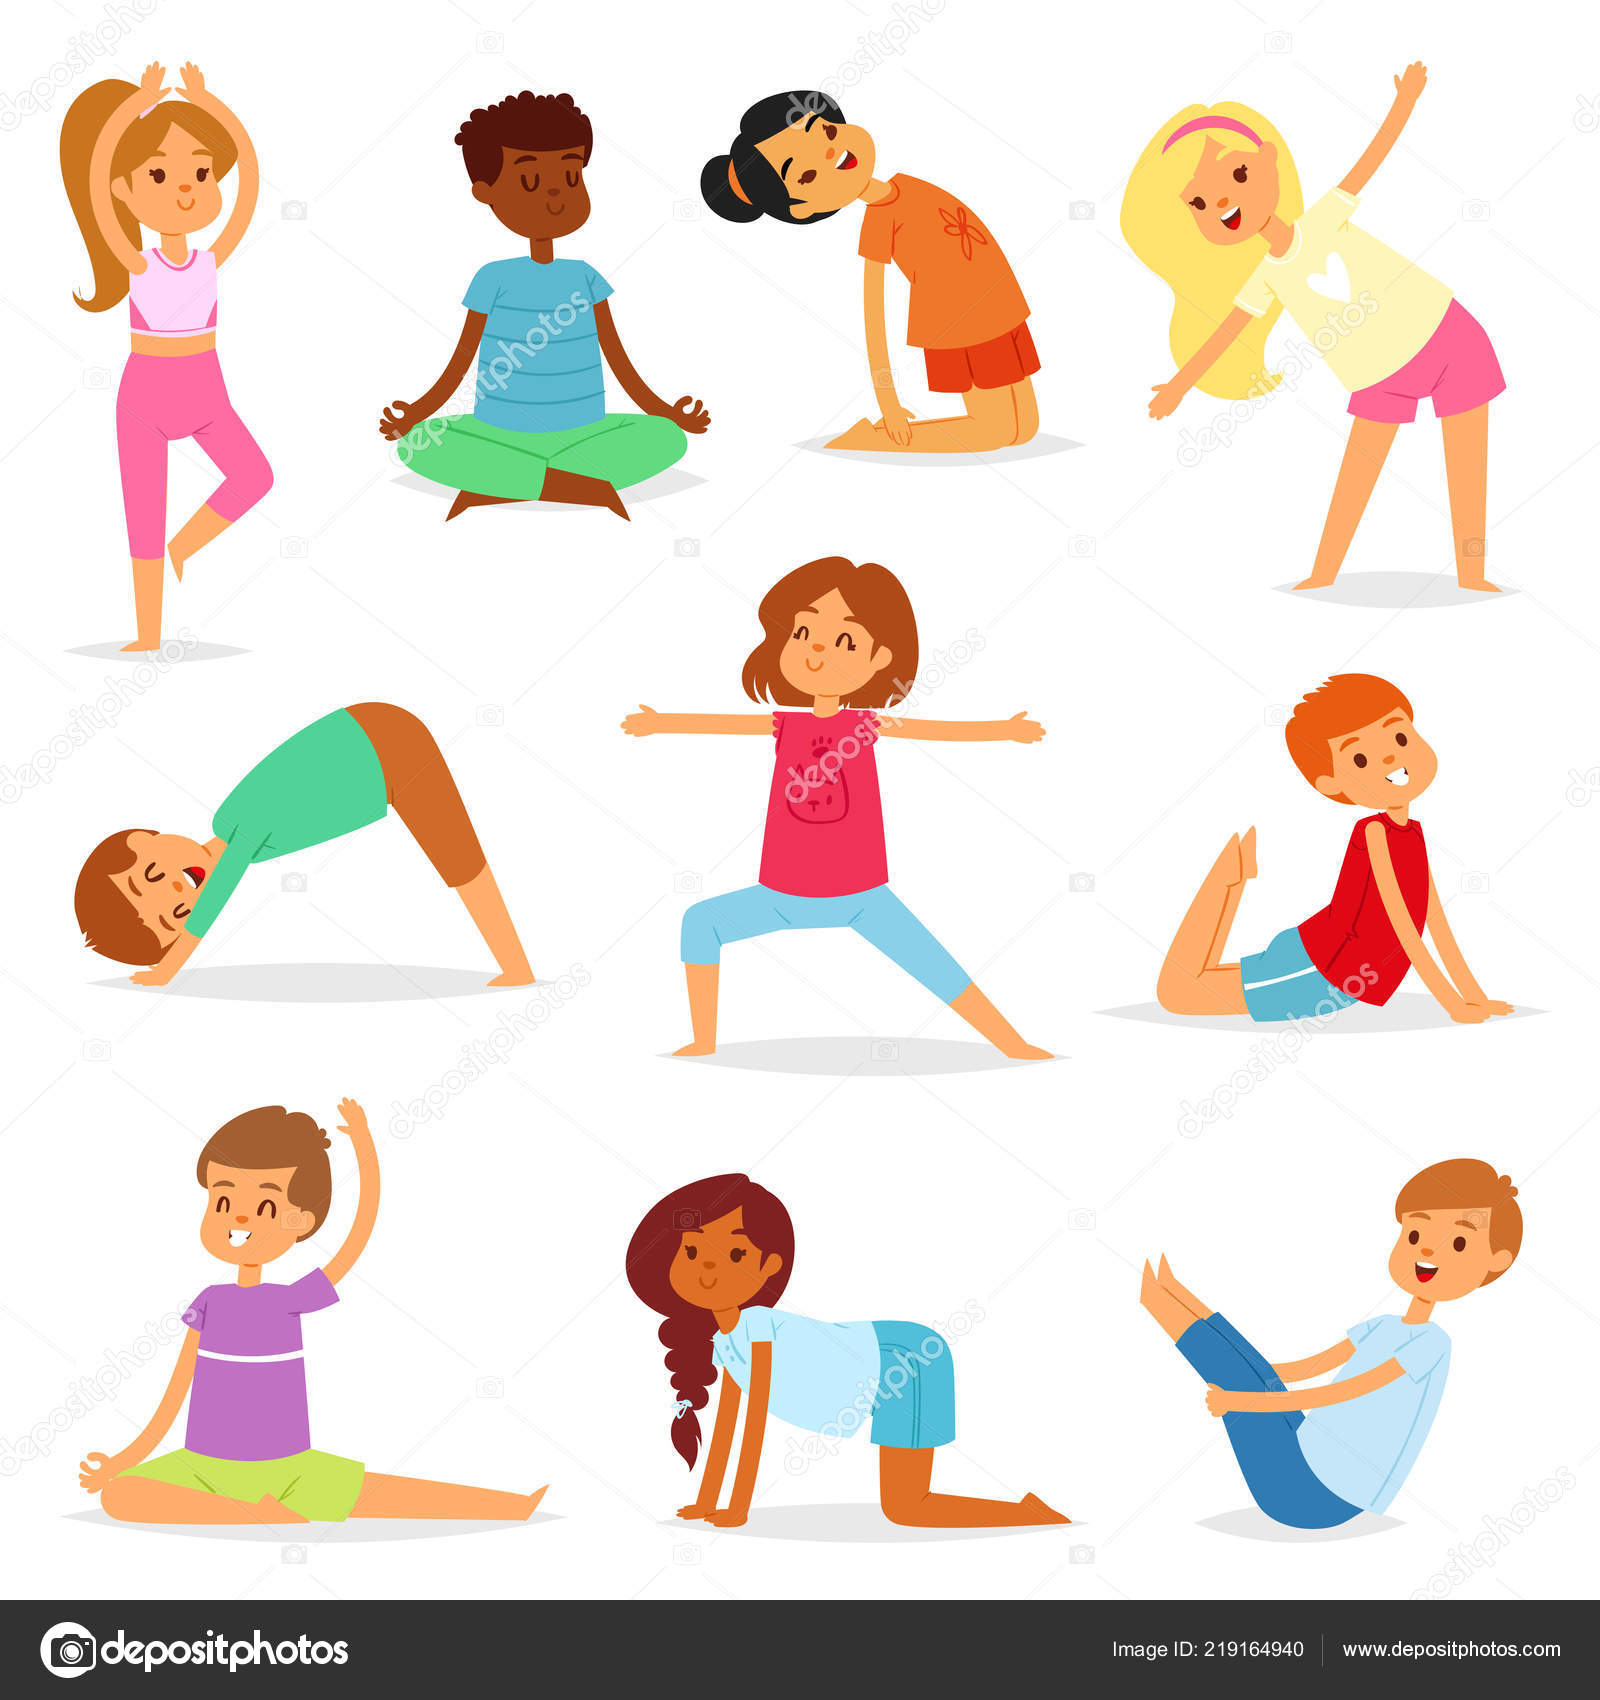 Yoga Kids Vector Young Child Yogi Character Training Sport Exercise Illustration Healthy Lifestyle Set Of Cartoon Boys And Girls Wellness Activity Of Stretching Meditation Isolated On White Background Stock Vector C